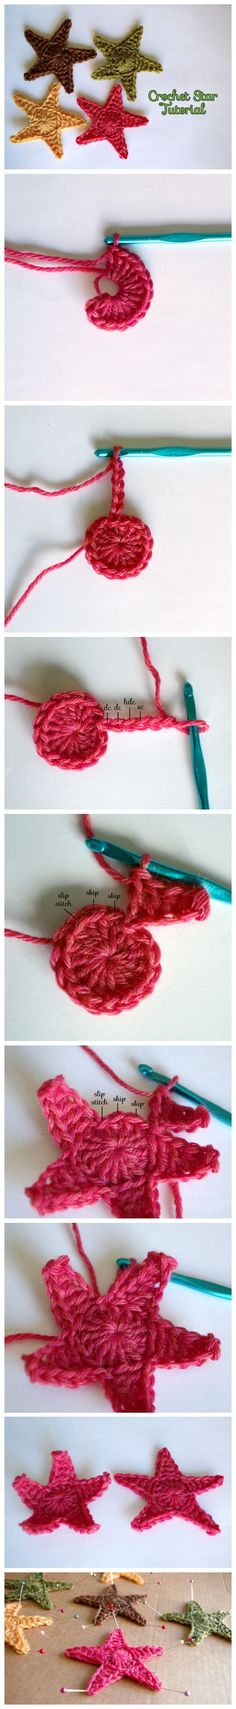 How to make a crochet star | #DIY and #Crafts